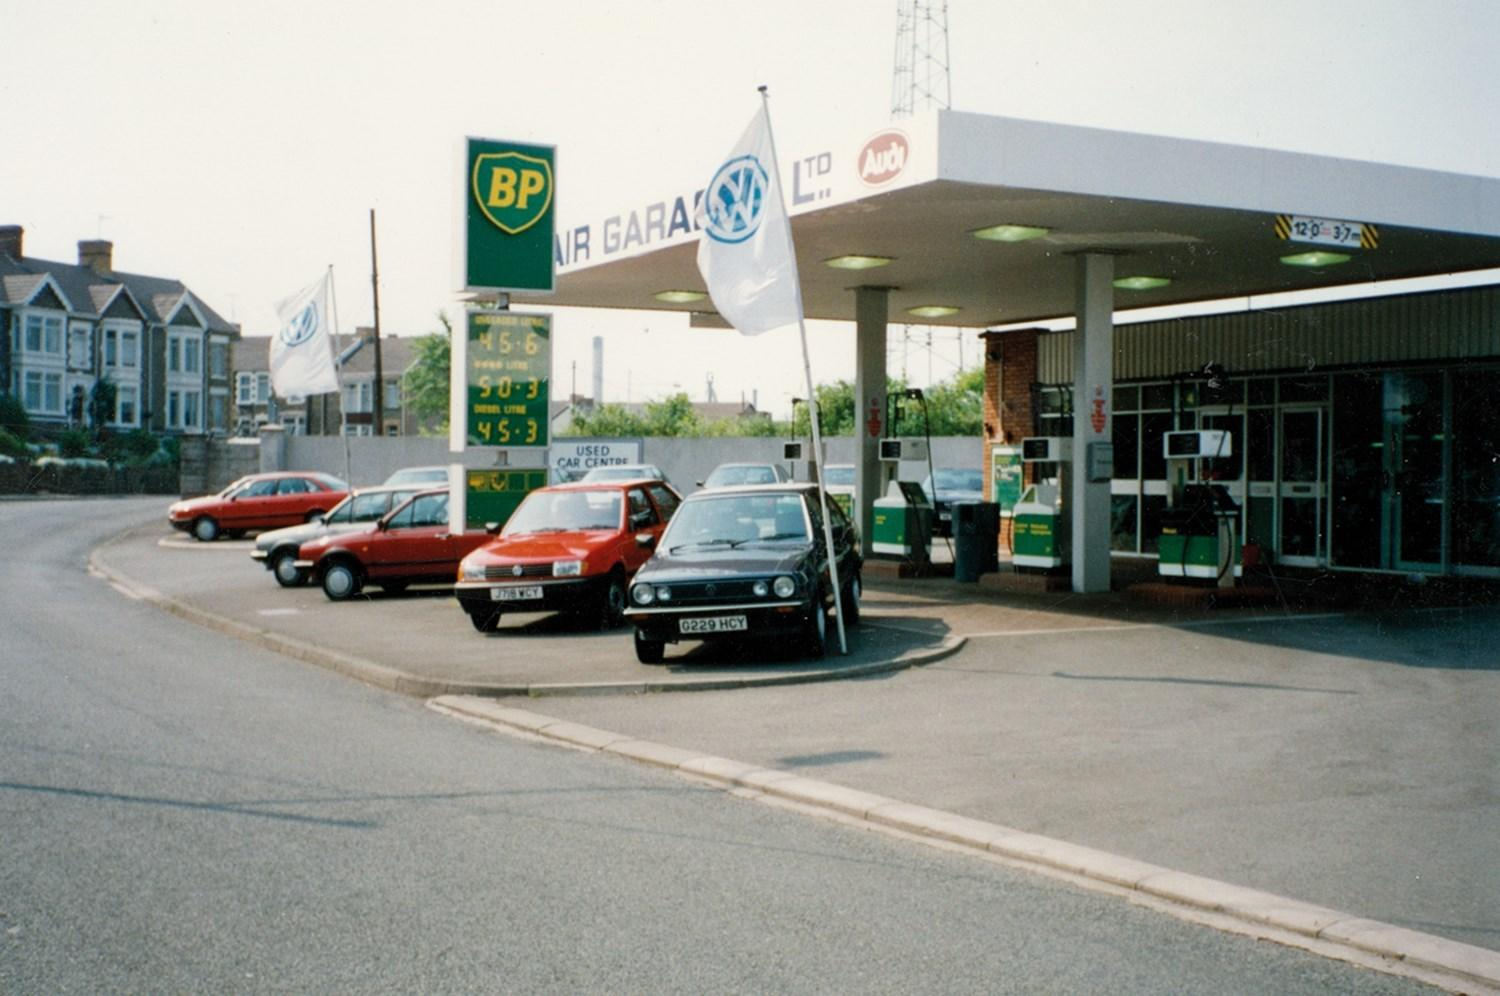 Old Sinclair Garages Forecourt image